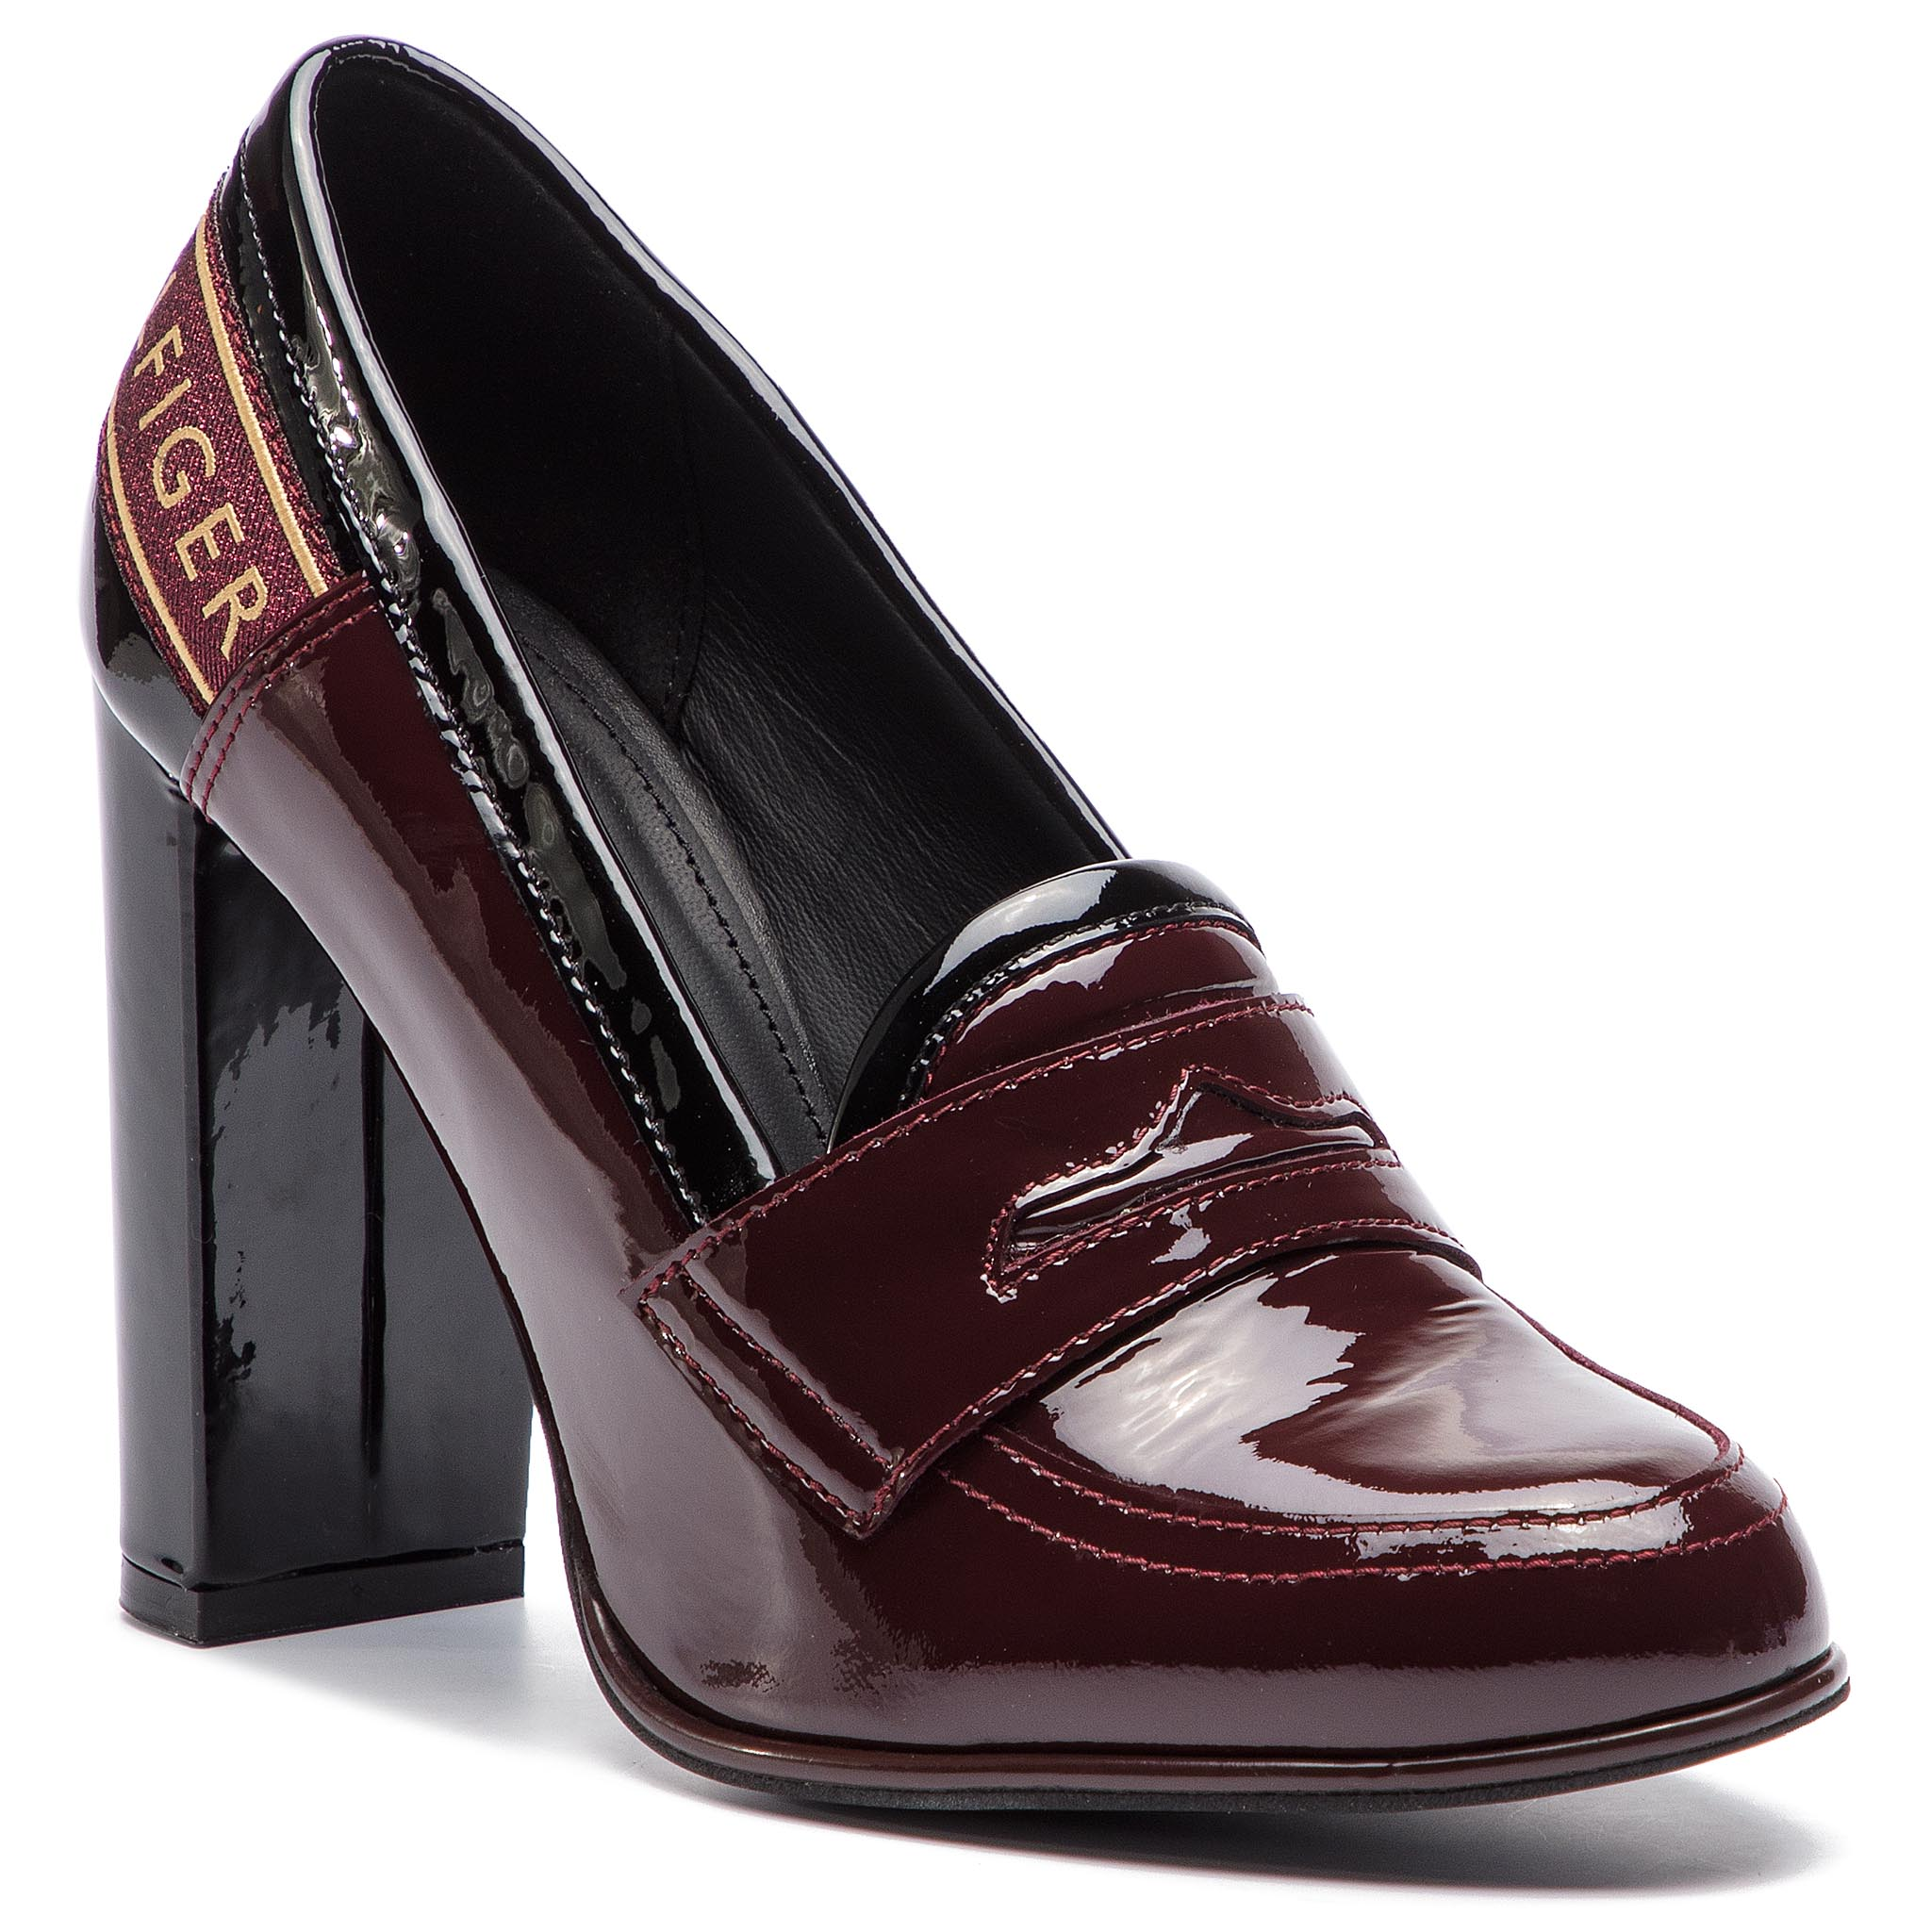 a5f8cfe7932 Bateliai TOMMY HILFIGER - Iconic Patent Loafer FW0FW04003 Decadent  Chocolate 296